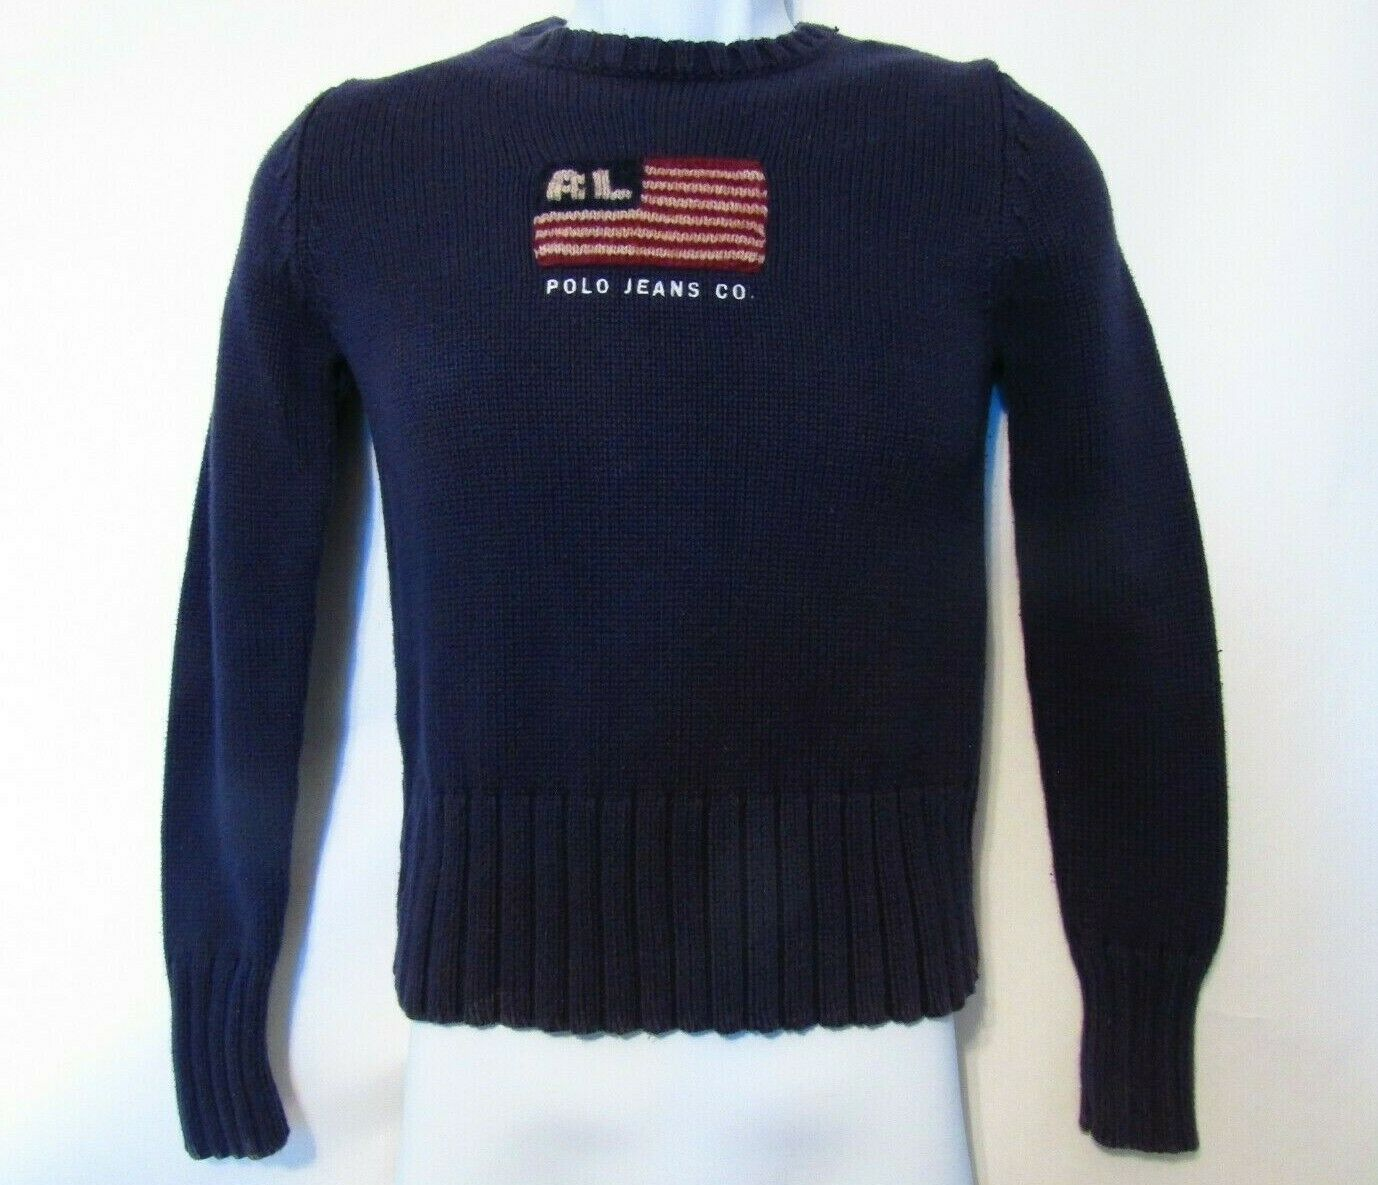 Ralph Lauren Sweater Knit Navy Size S Vintage Flag RL Logo Rare Polo Jeans Co.